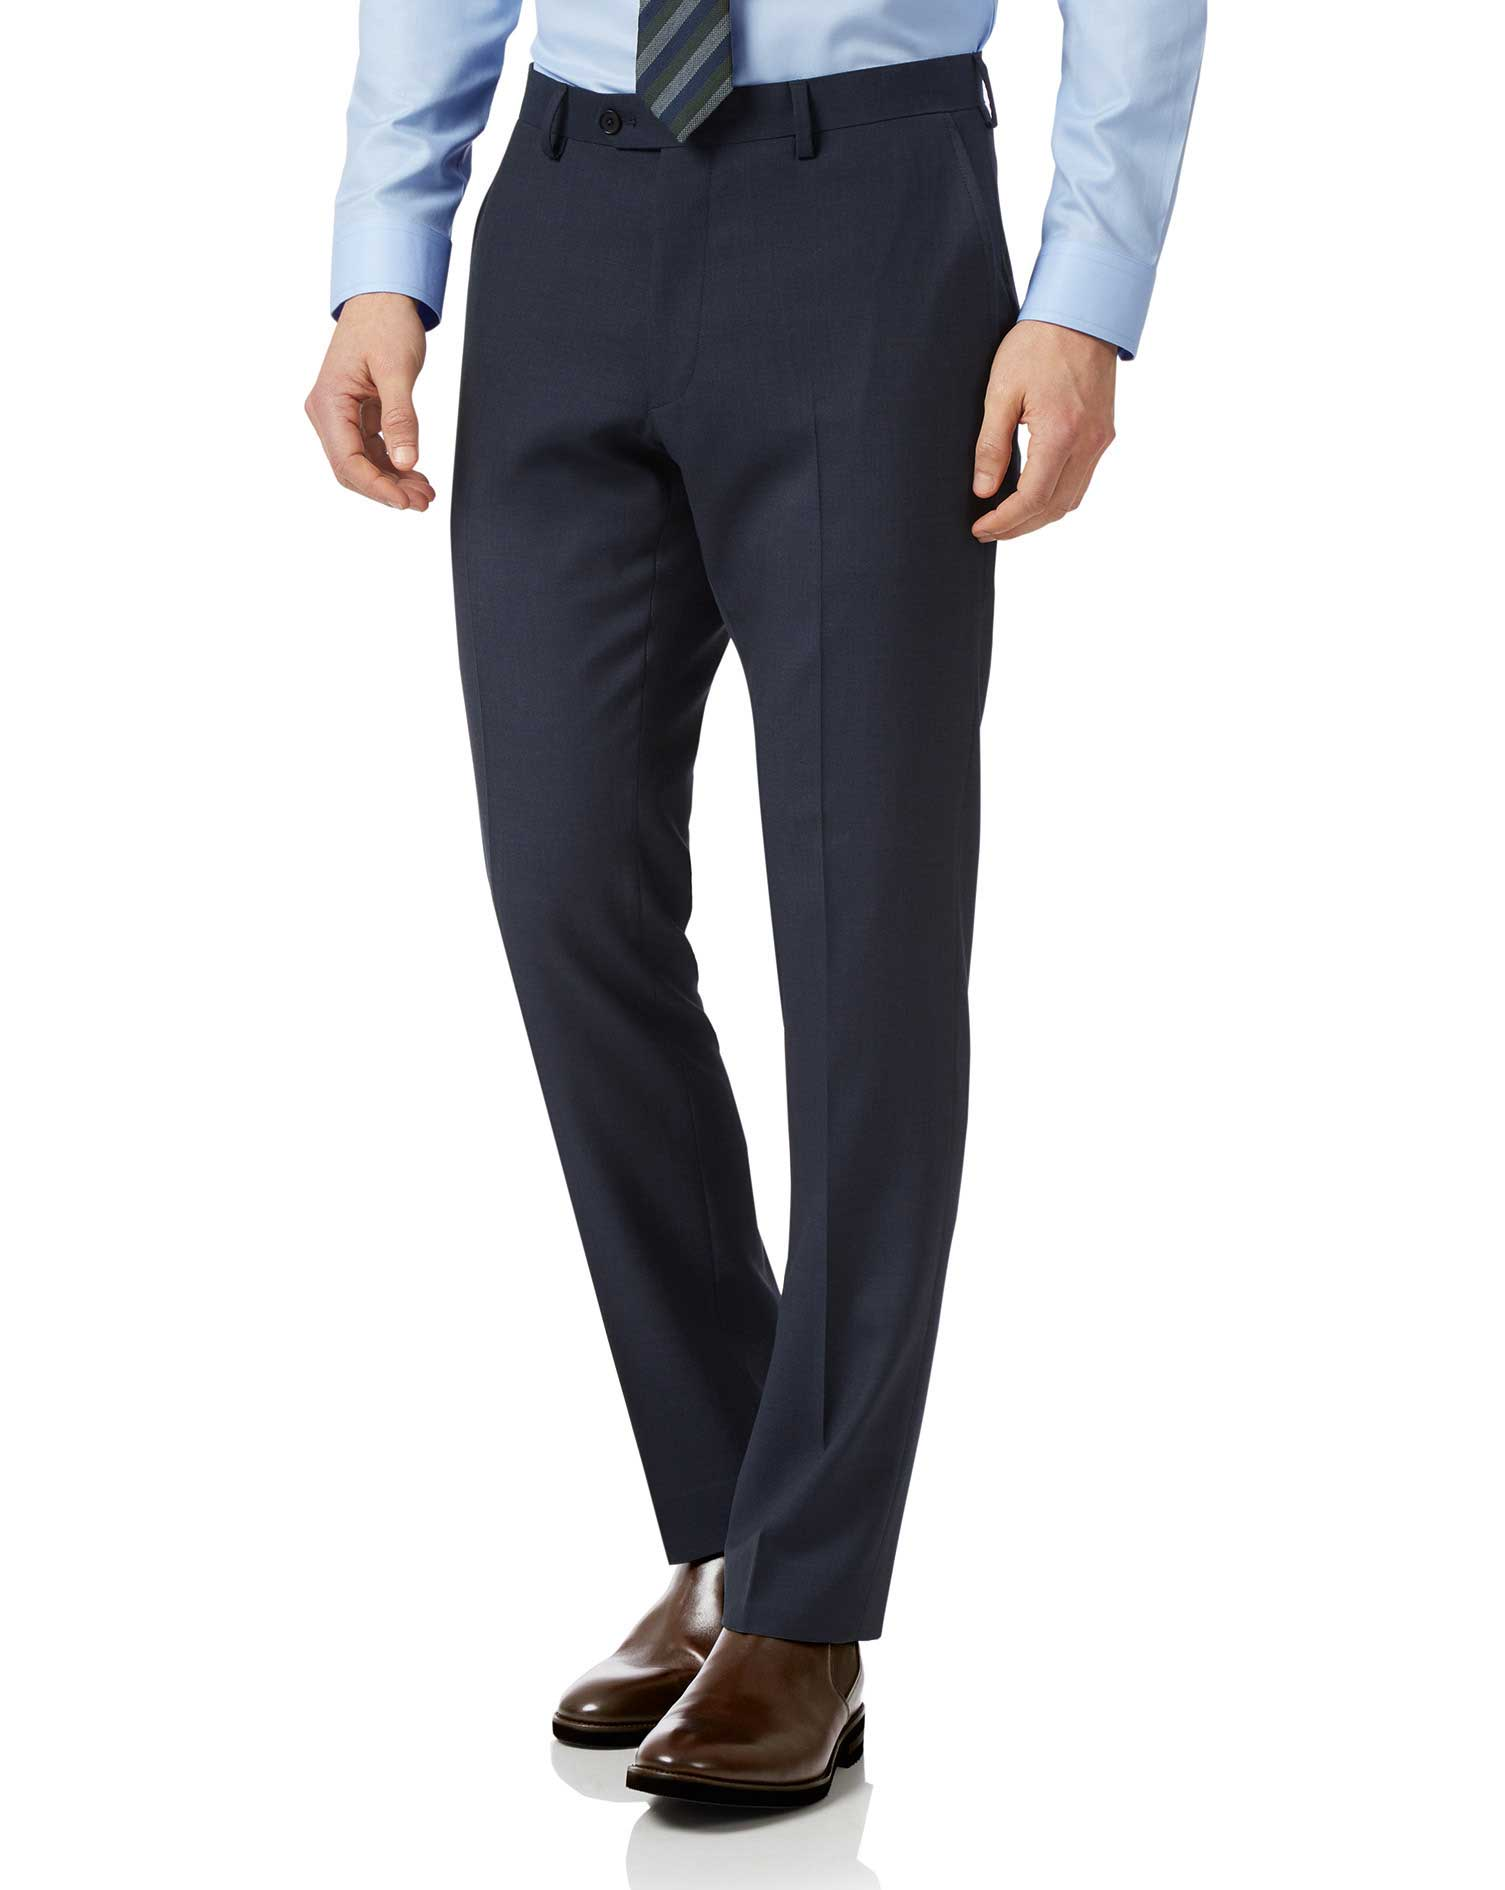 Navy Slim Fit Sharkskin Travel Suit Trousers Size W38 L34 by Charles Tyrwhitt from Charles Tyrwhitt